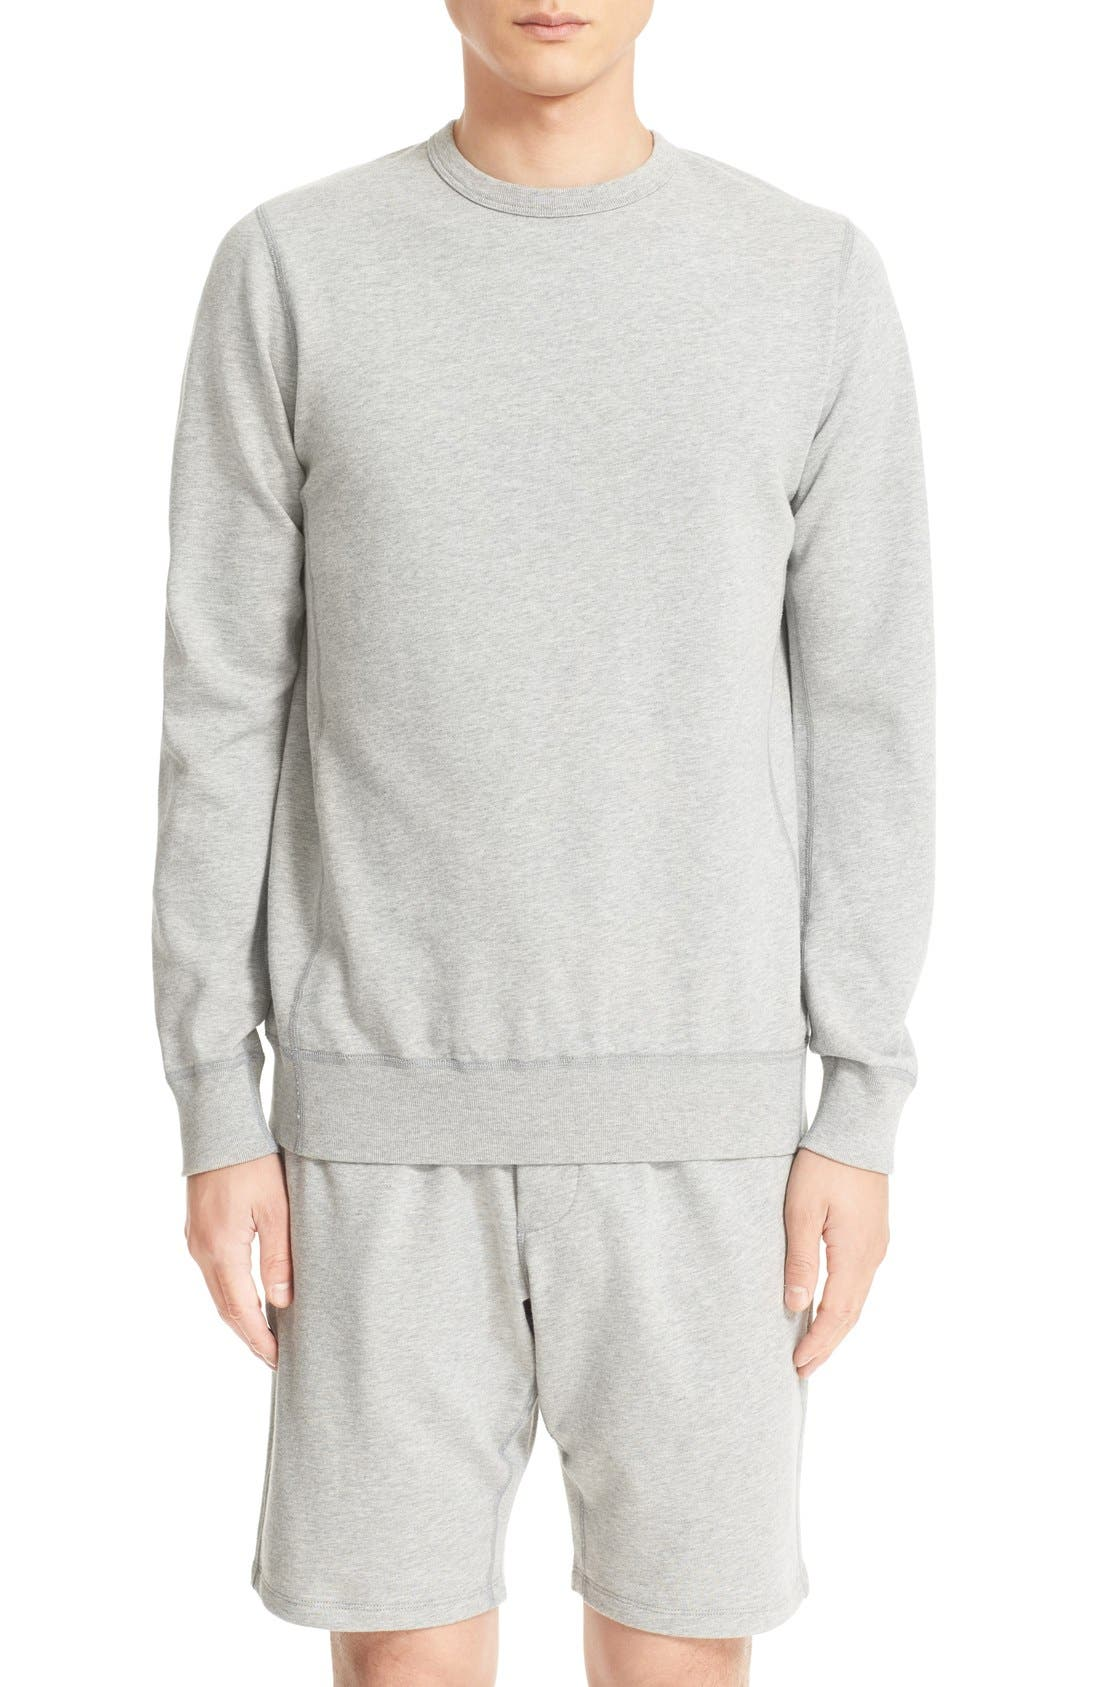 Main Image - wings + horns French Terry Sweatshirt